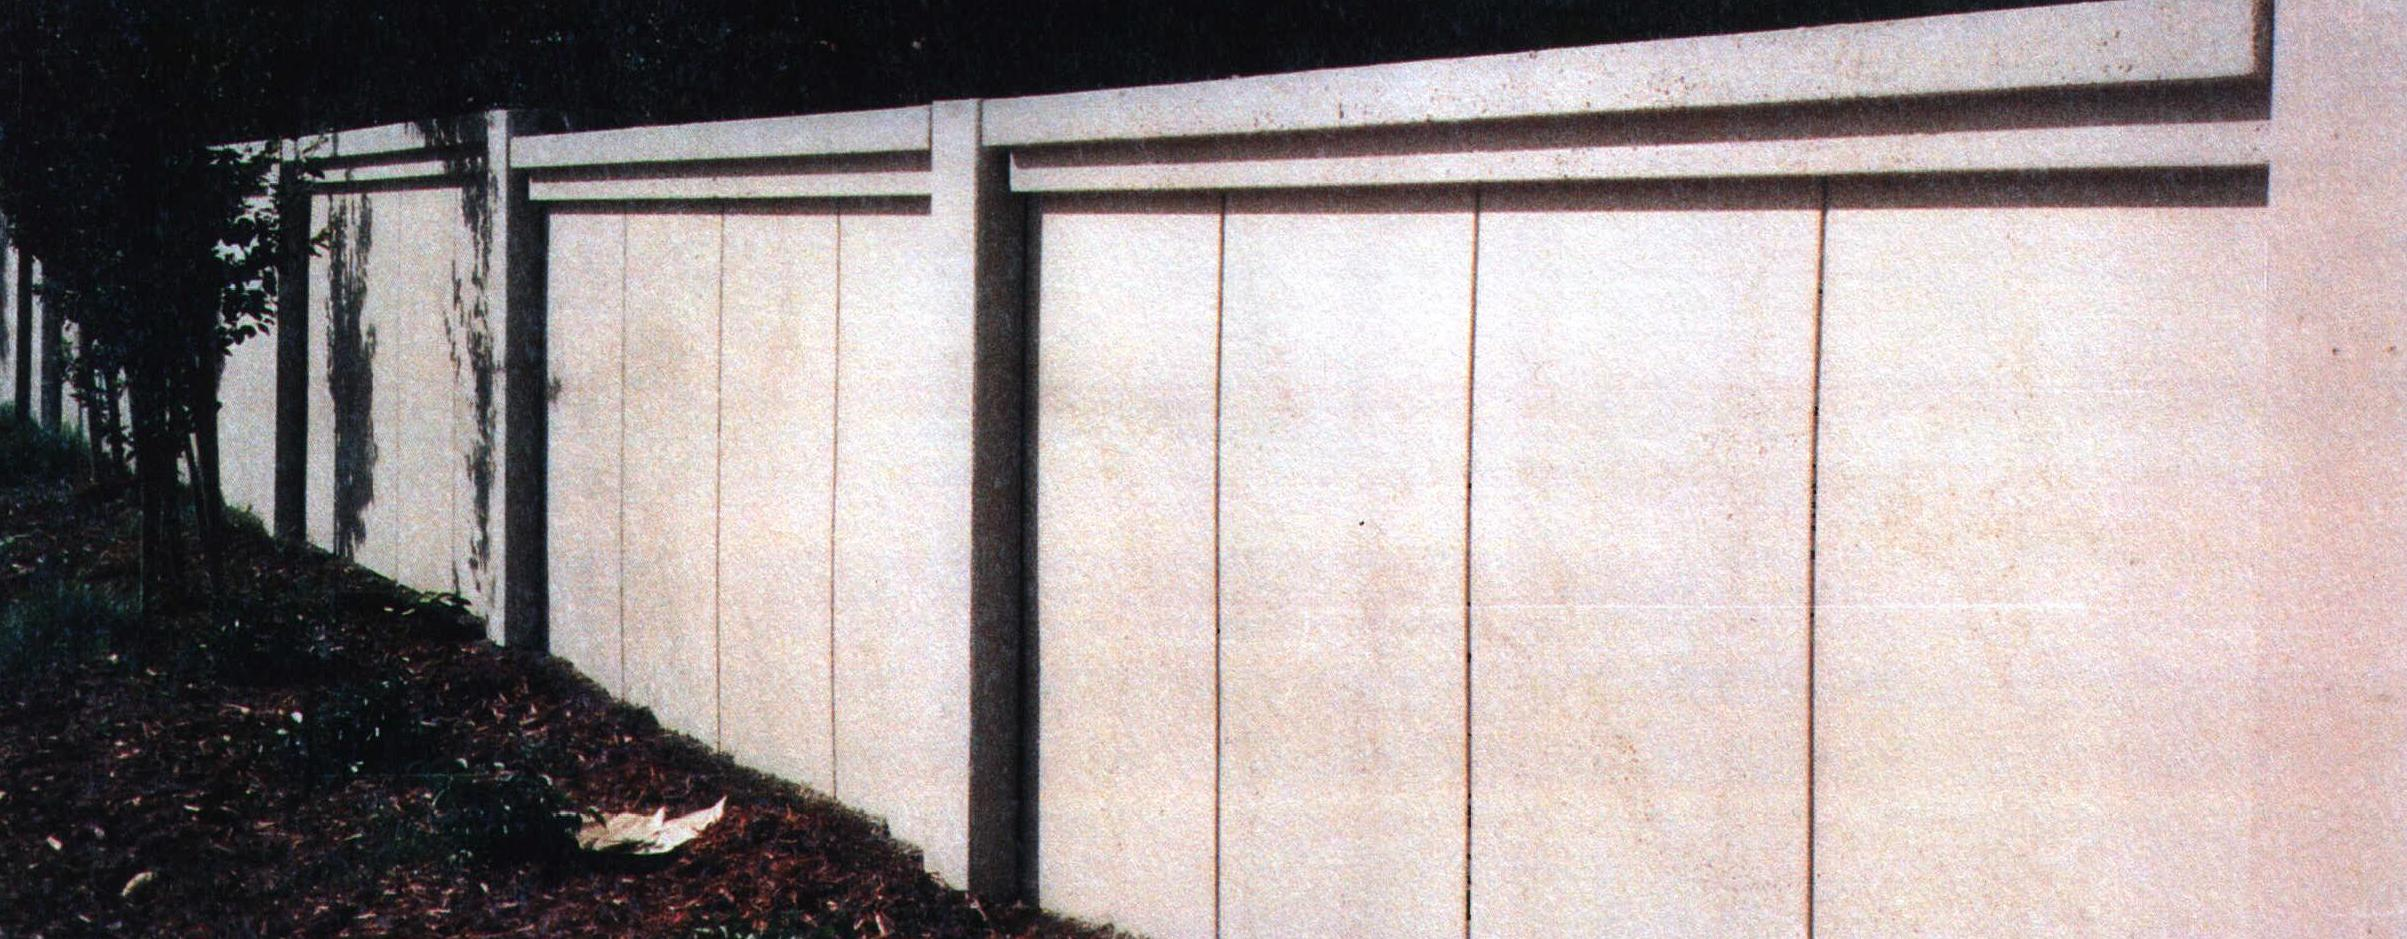 precast concrete wall, precast concrete, concrete fence, concrete sound wall